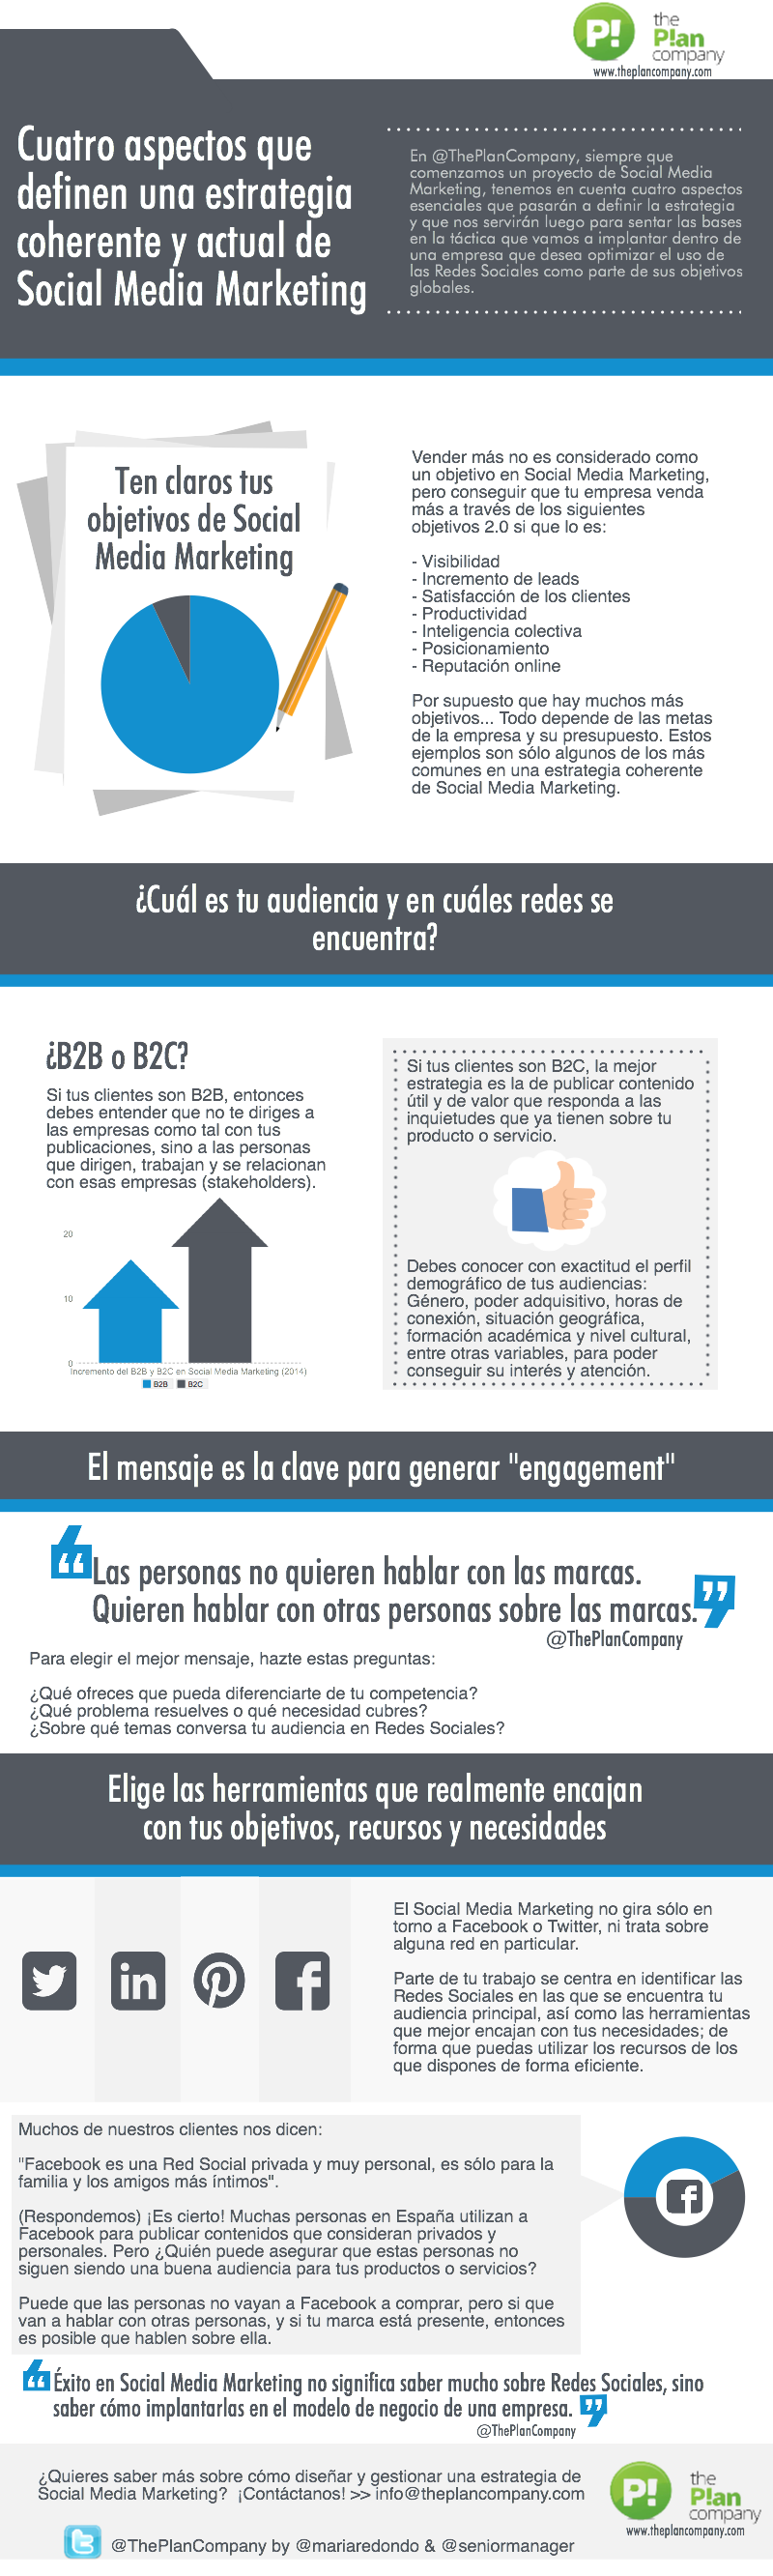 4 aspectos para una estrategia coherente de Social Media Marketing